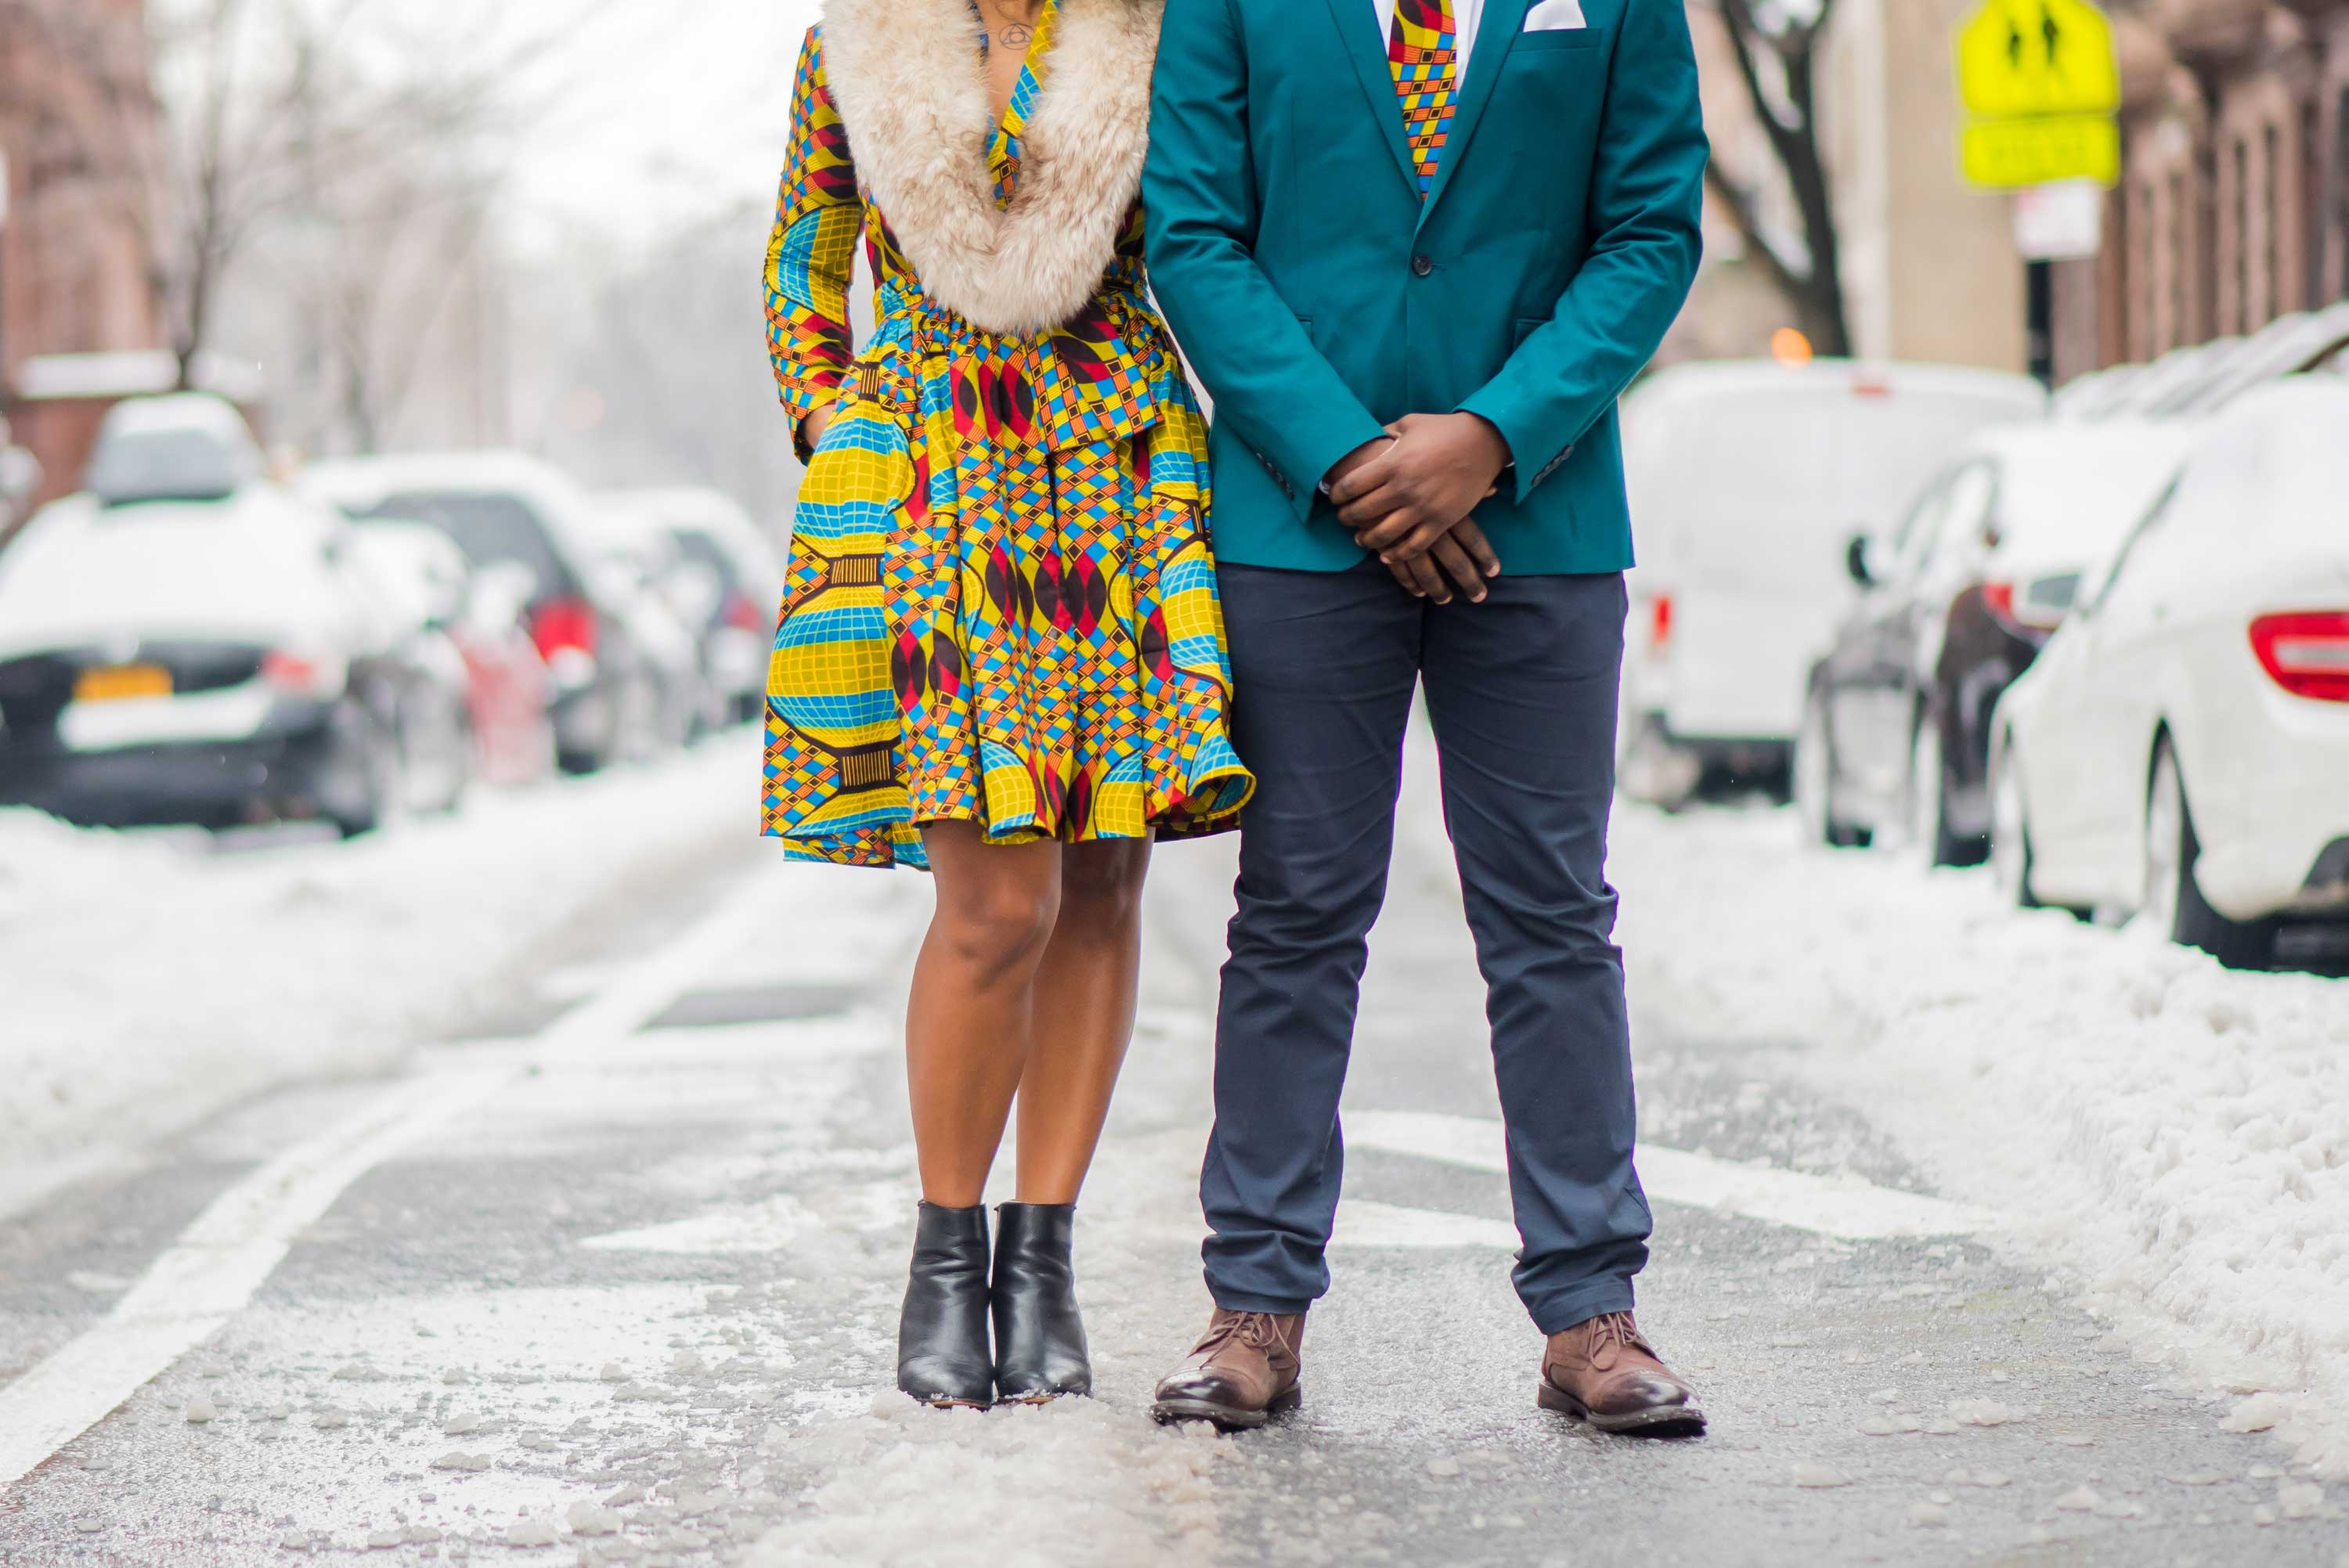 Close up of bride and groom's feet engagement photo engaged snowy New York City session